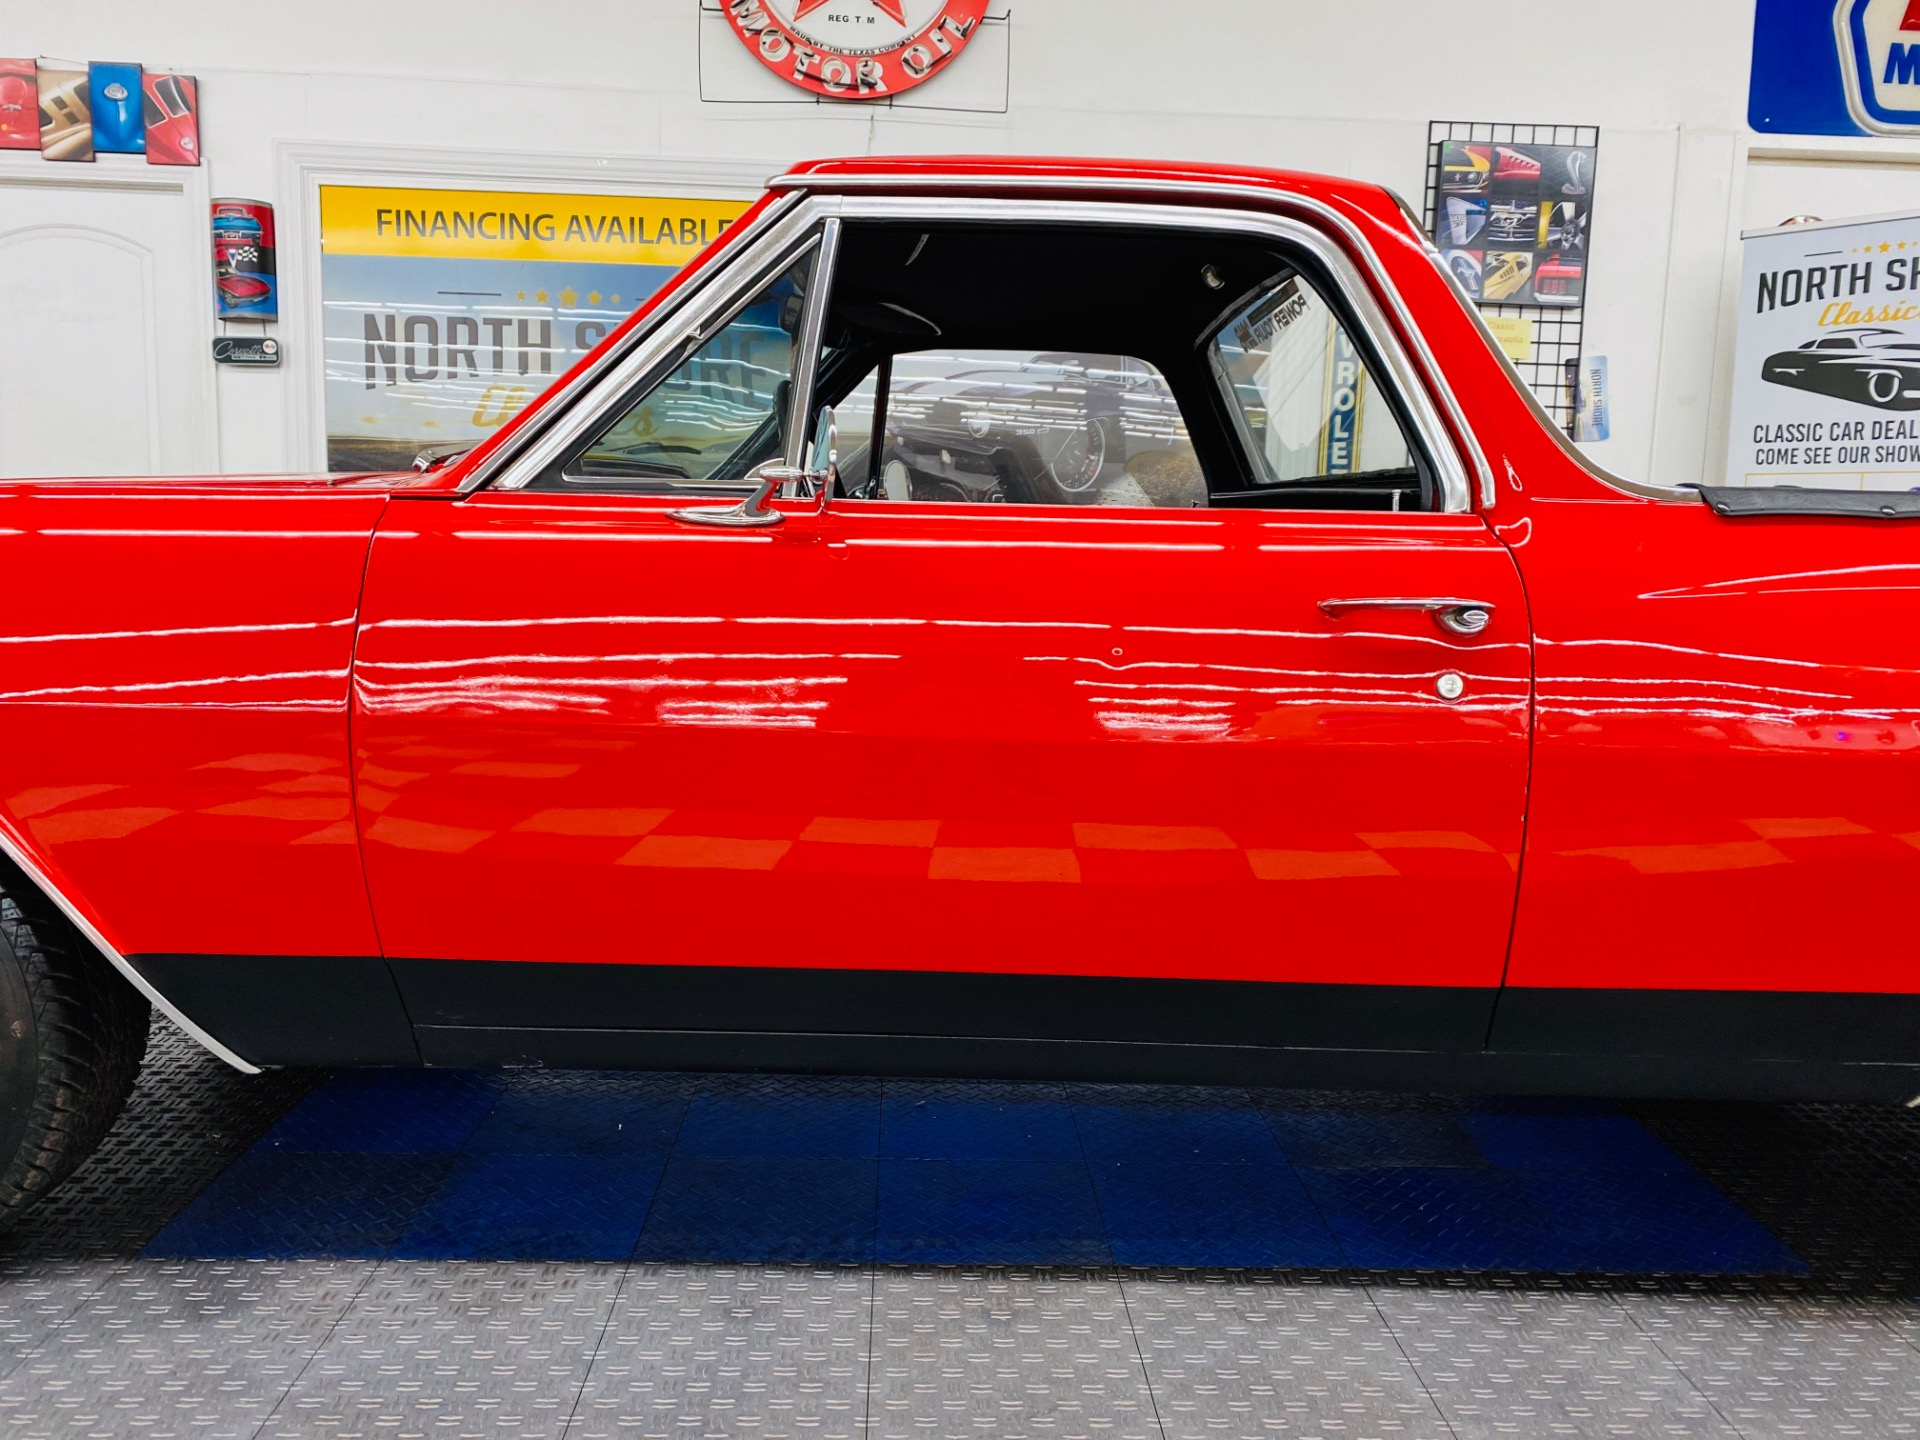 Used 1965 Chevrolet El Camino - 300HP 327 ENGINE - 700R4 TRANS - VERY CLEAN - SEE VIDEO | Mundelein, IL